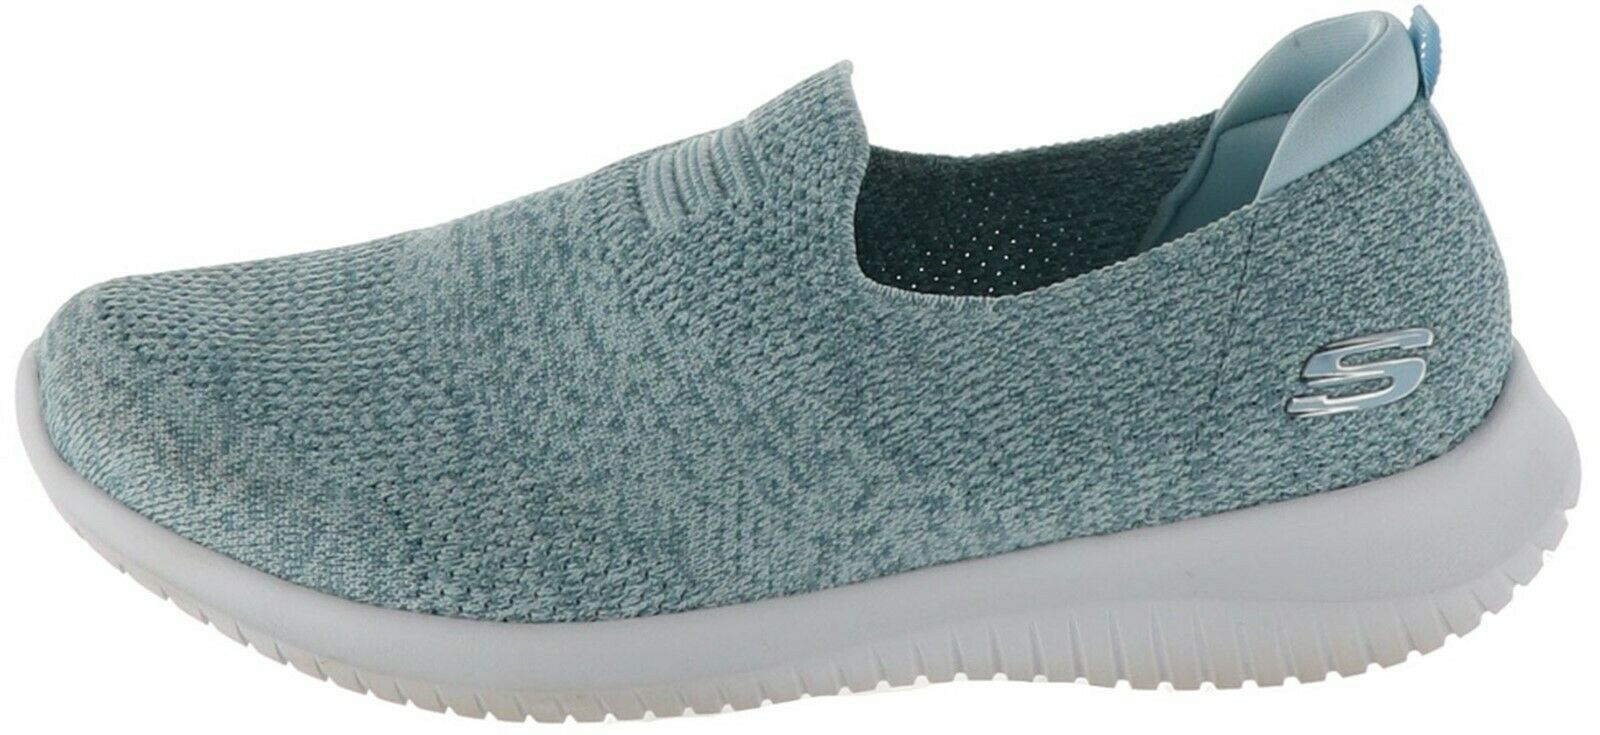 Primary image for Skechers Ultra Flex Flat Knit Shoes Harmonious Light Blue 8.5M NEW A349786